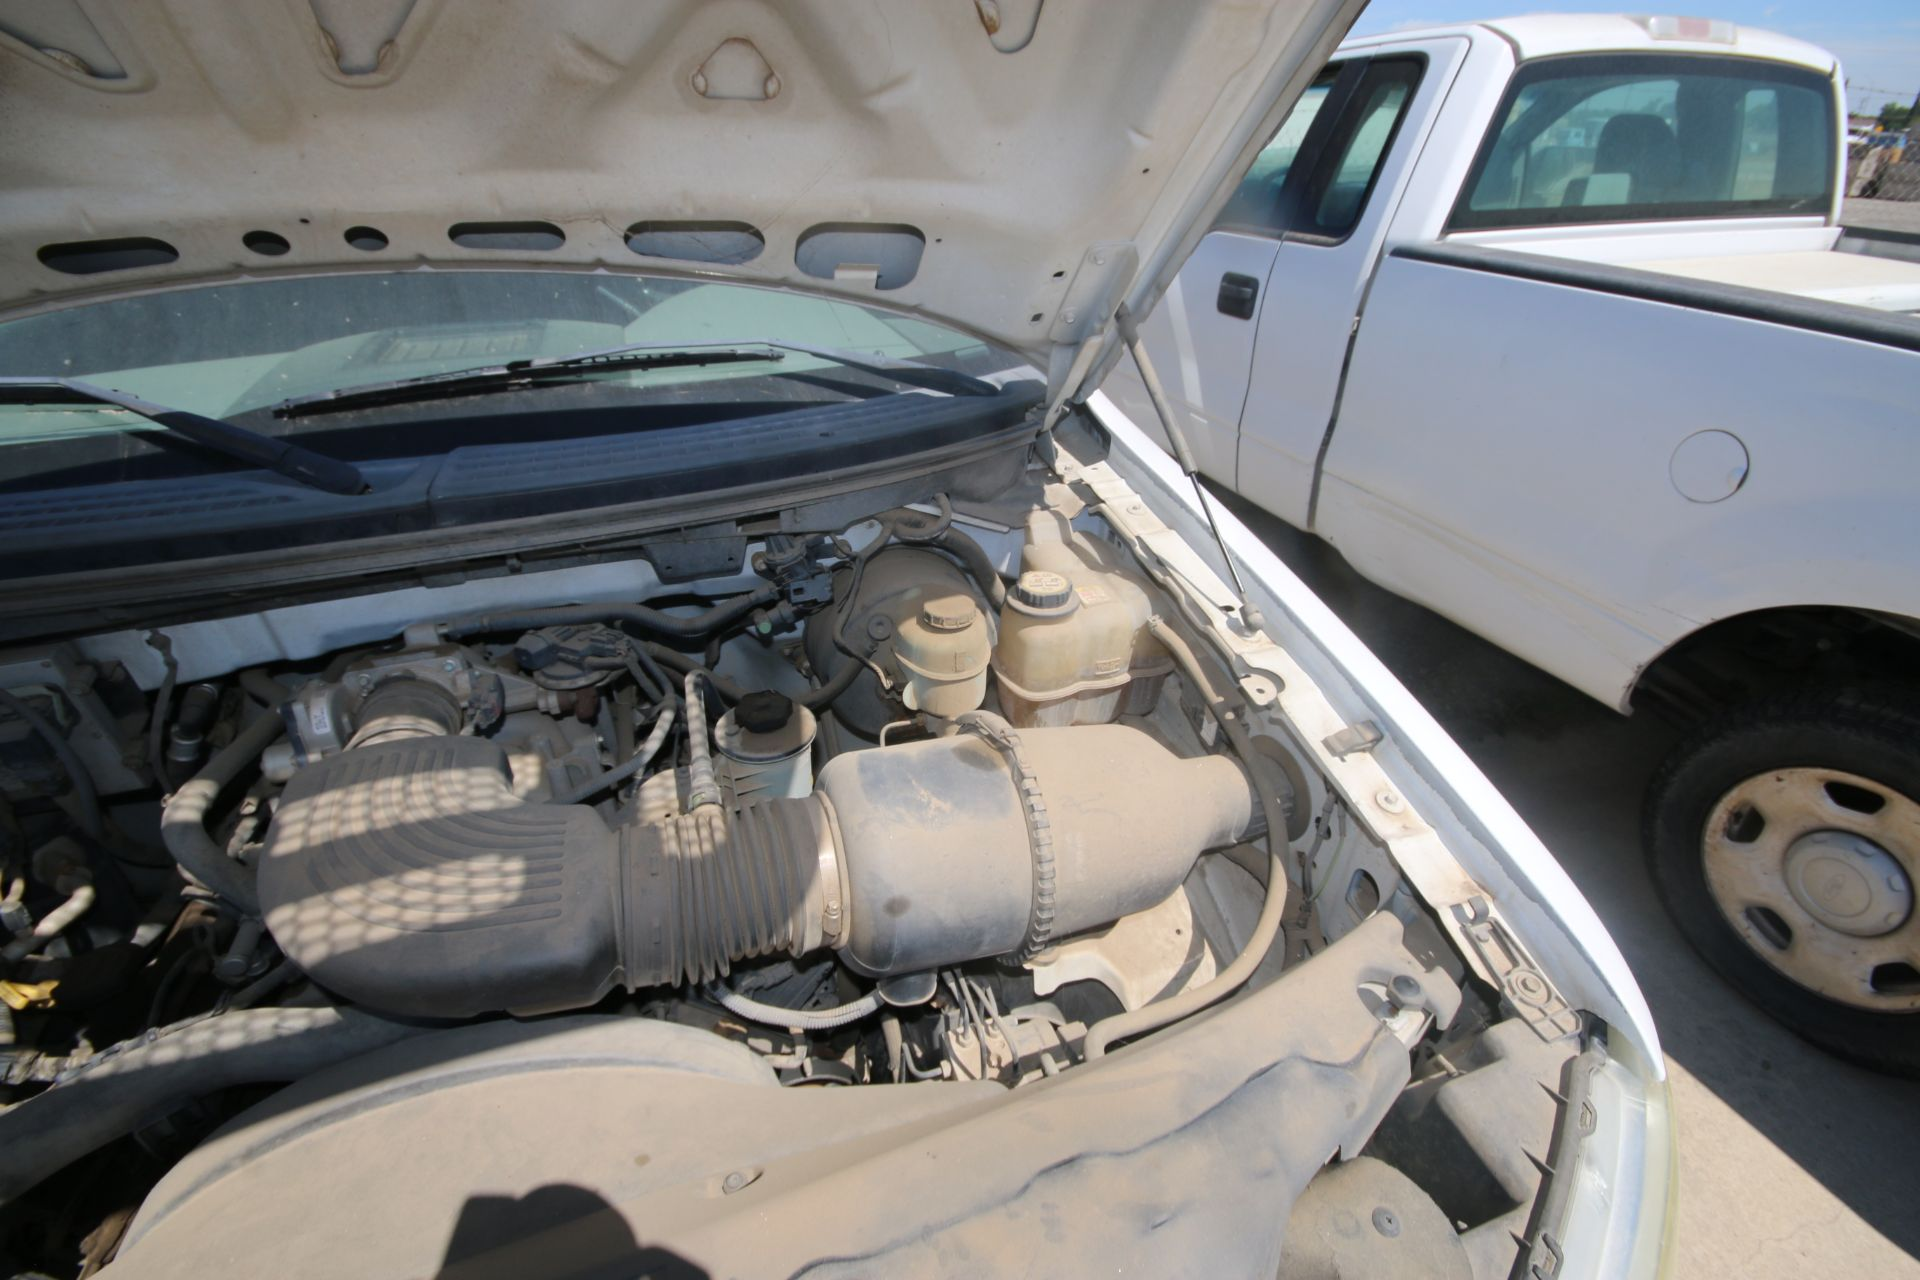 2006 Ford F150 S/C Pick Up Truck, VIN #: 1FTRX12W46FA38458, with 233,106 Miles, Started Up as of - Image 20 of 21